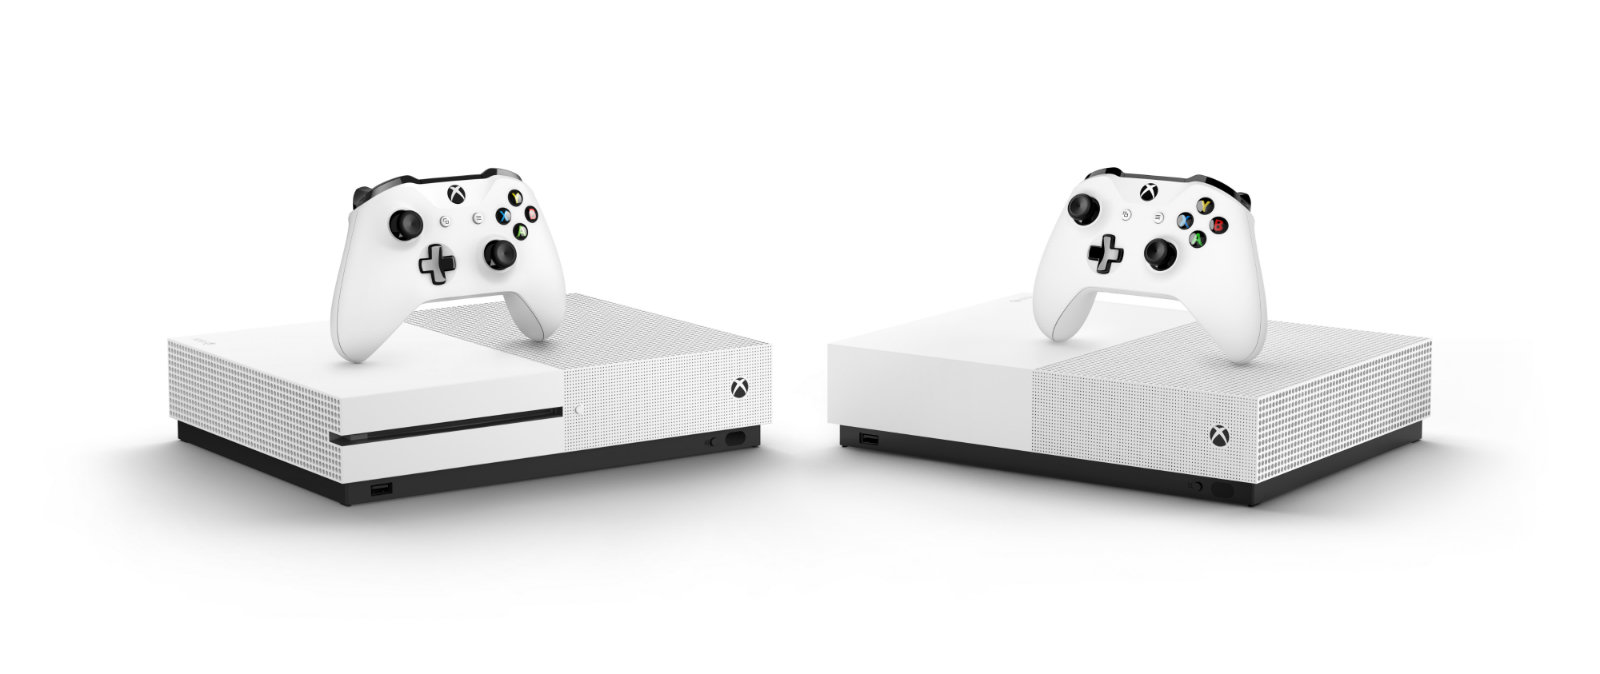 The Xbox One S All-Digital Edition - why pay more for less?